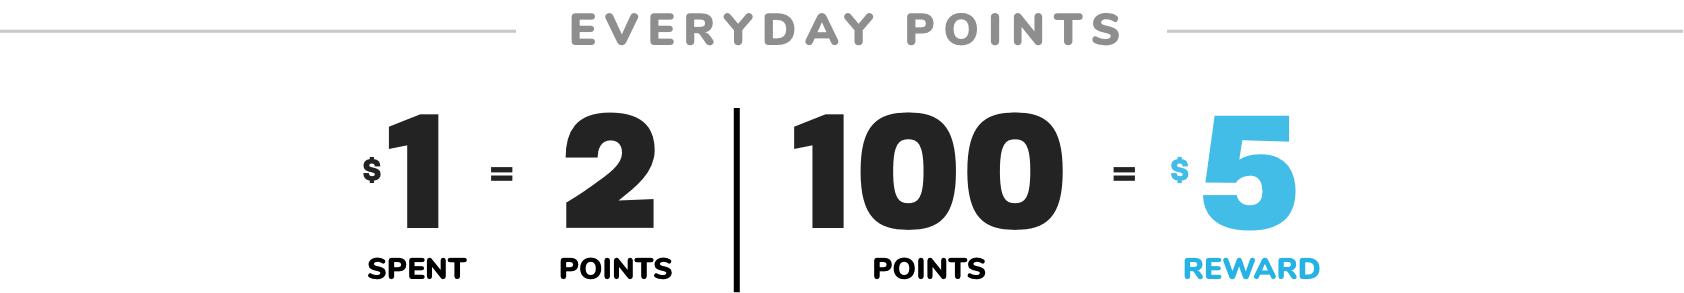 DOUBLE REWARDS | EVERYDAY POINTS